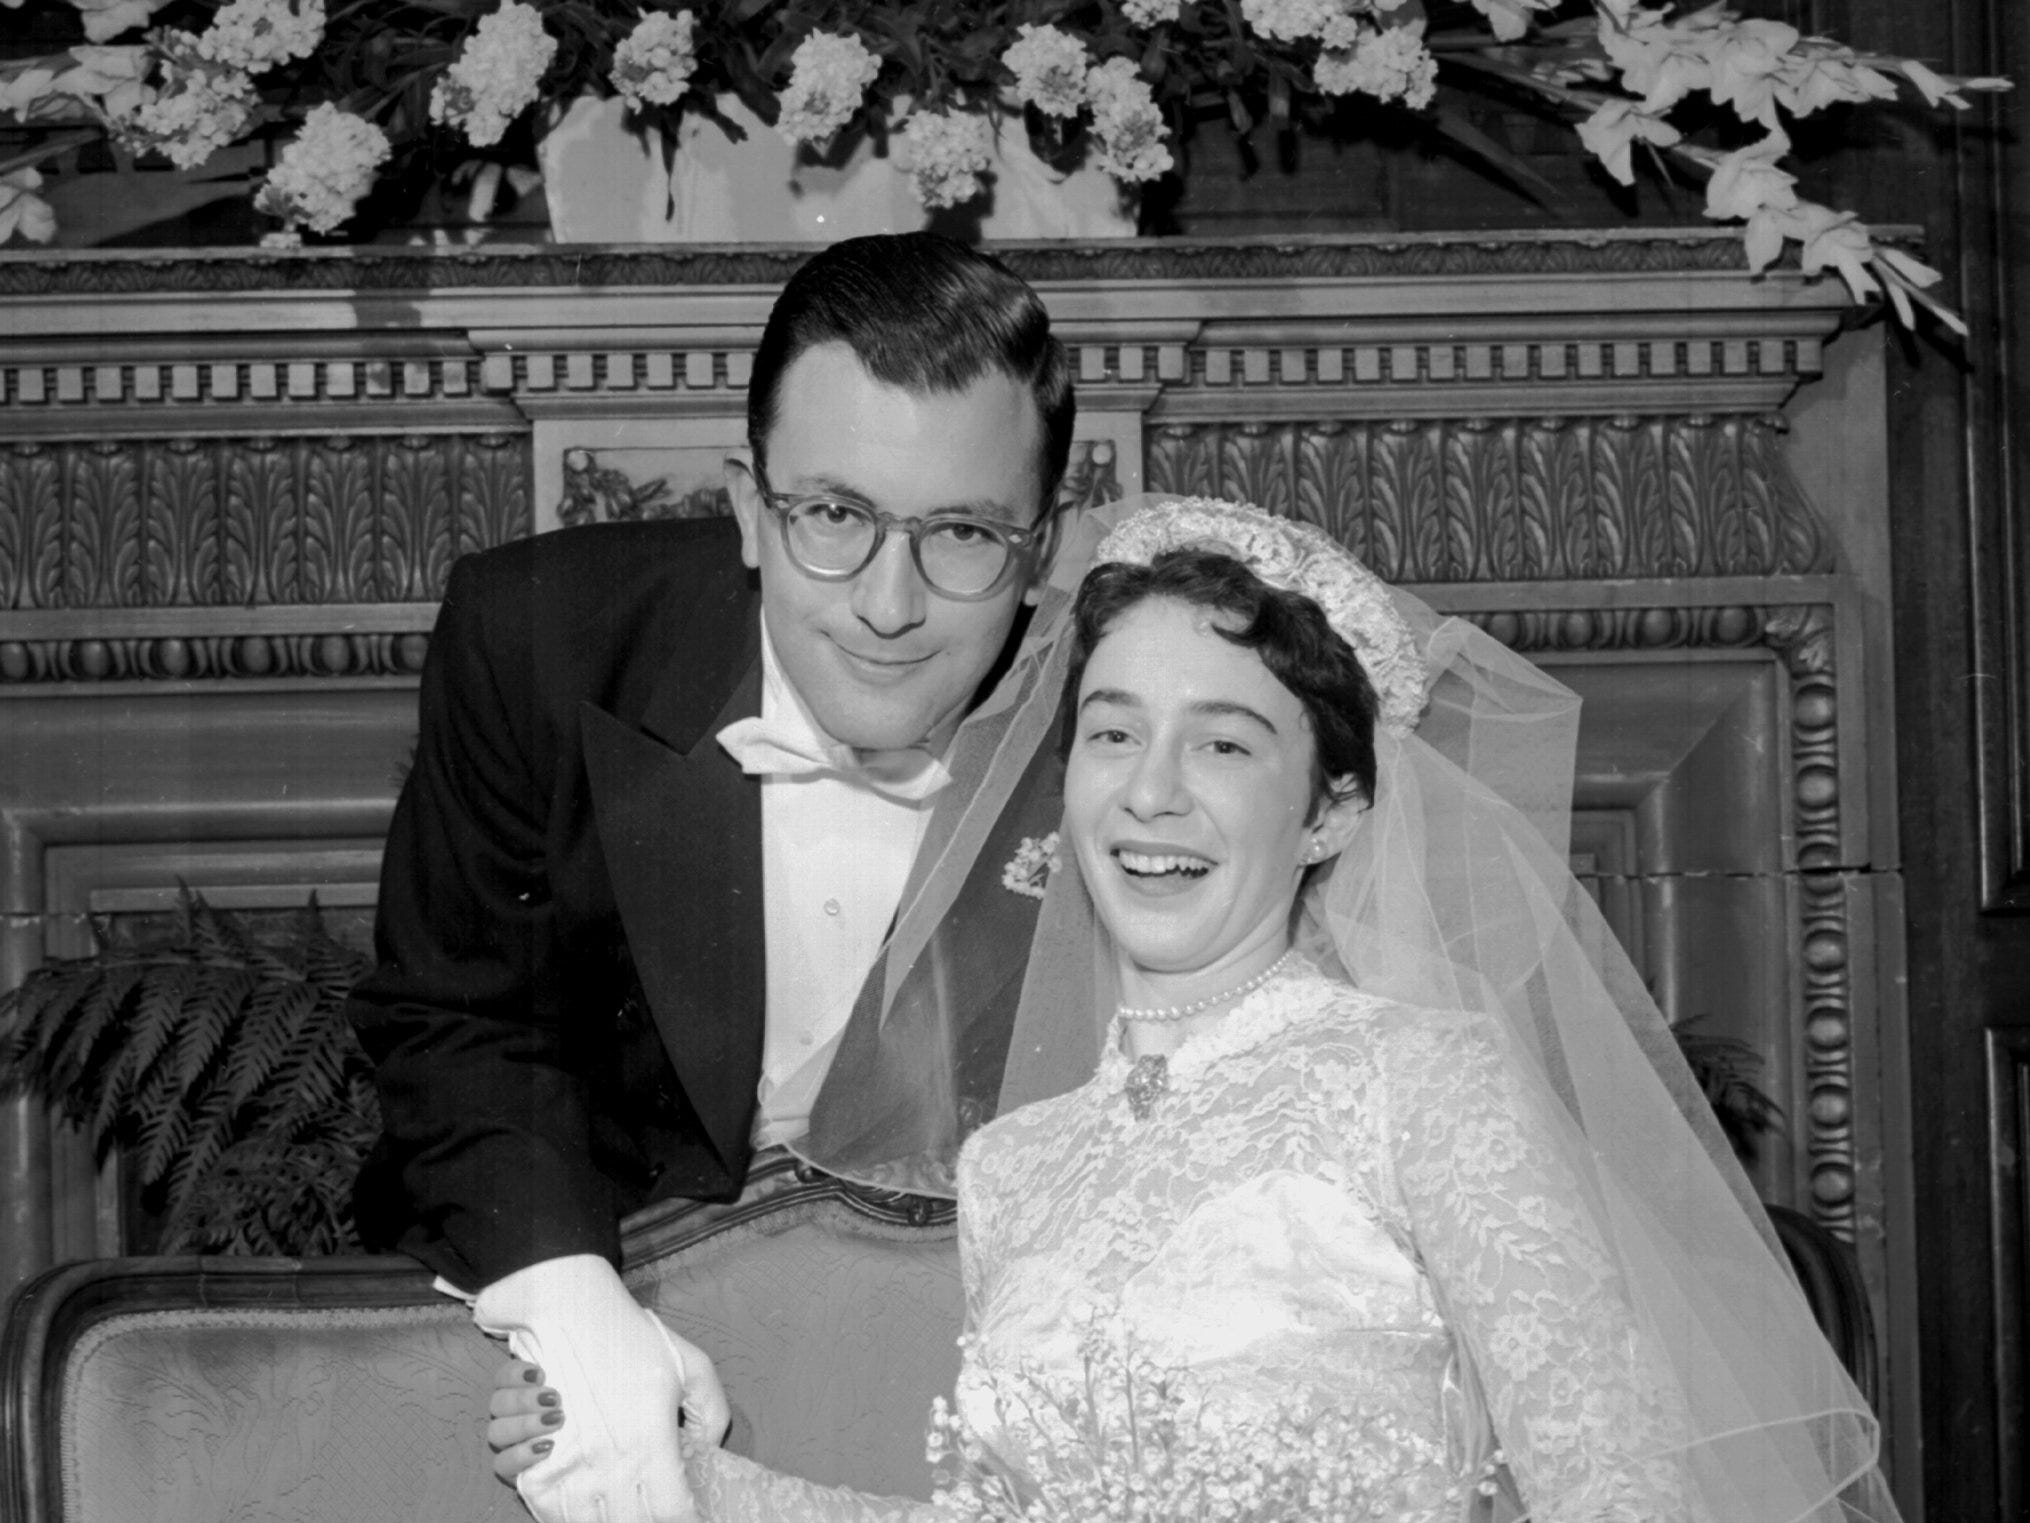 "Mr. and Mrs. Rudi Egon Scheidt pause in festivities at the Peabody following their wedding on 13 Feb 1954.  She is the former Miss Helen ""Honey"" Hohenberg, daughter of Mrs. and Mrs. Adolph Elkan Hohenberg of 54 White Station Road."